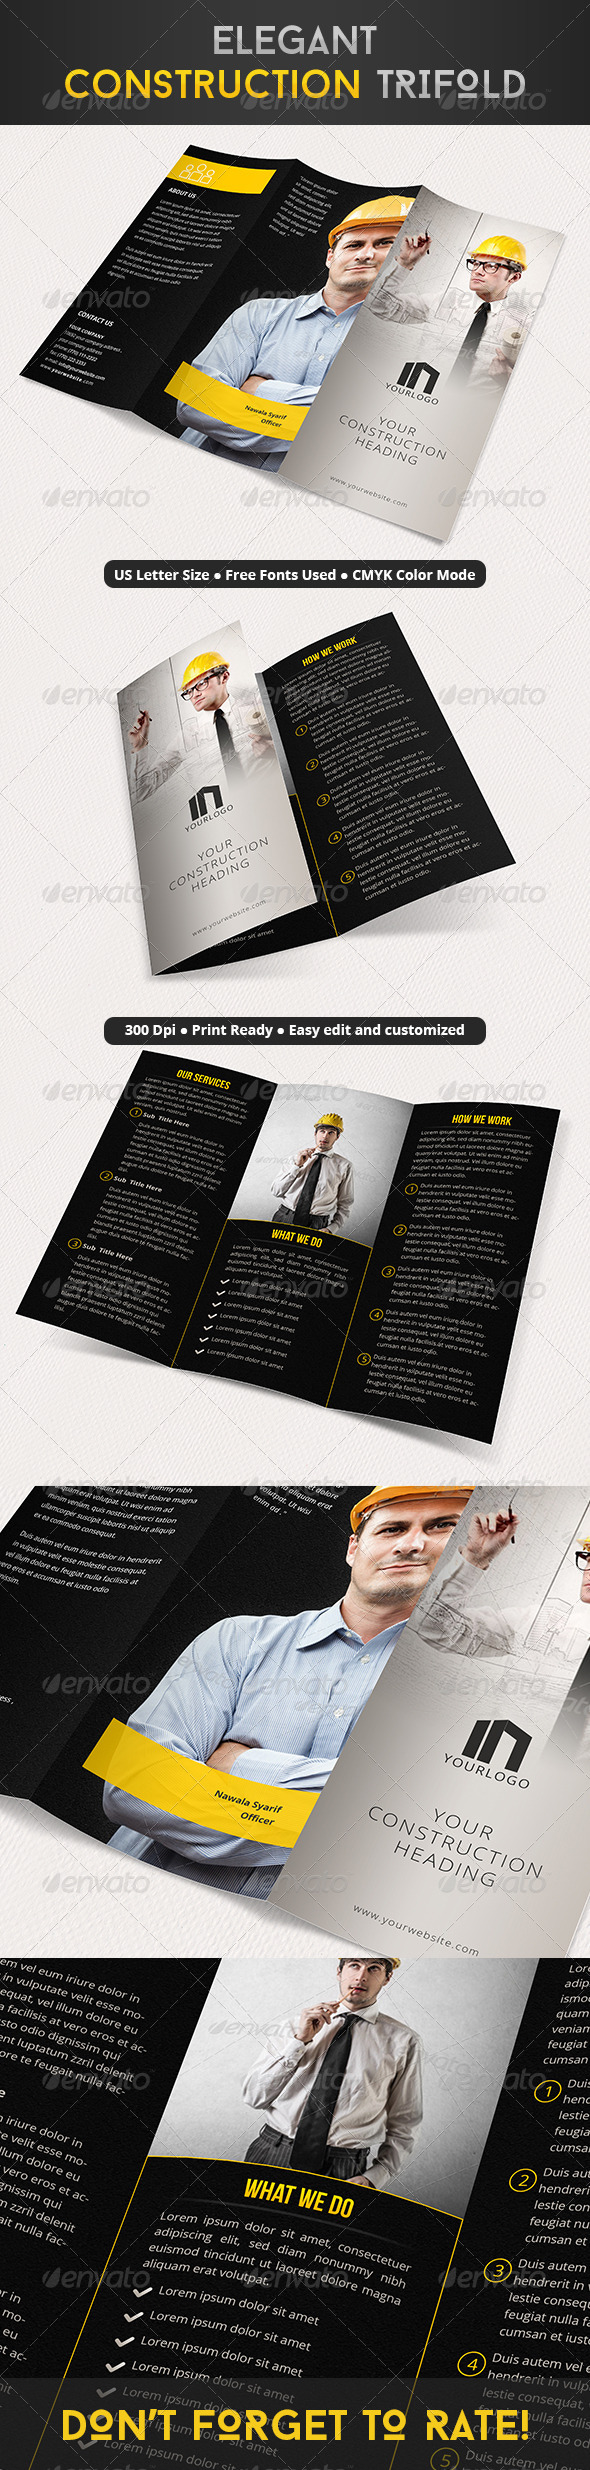 GraphicRiver Elegant Construction Trifold 8102655